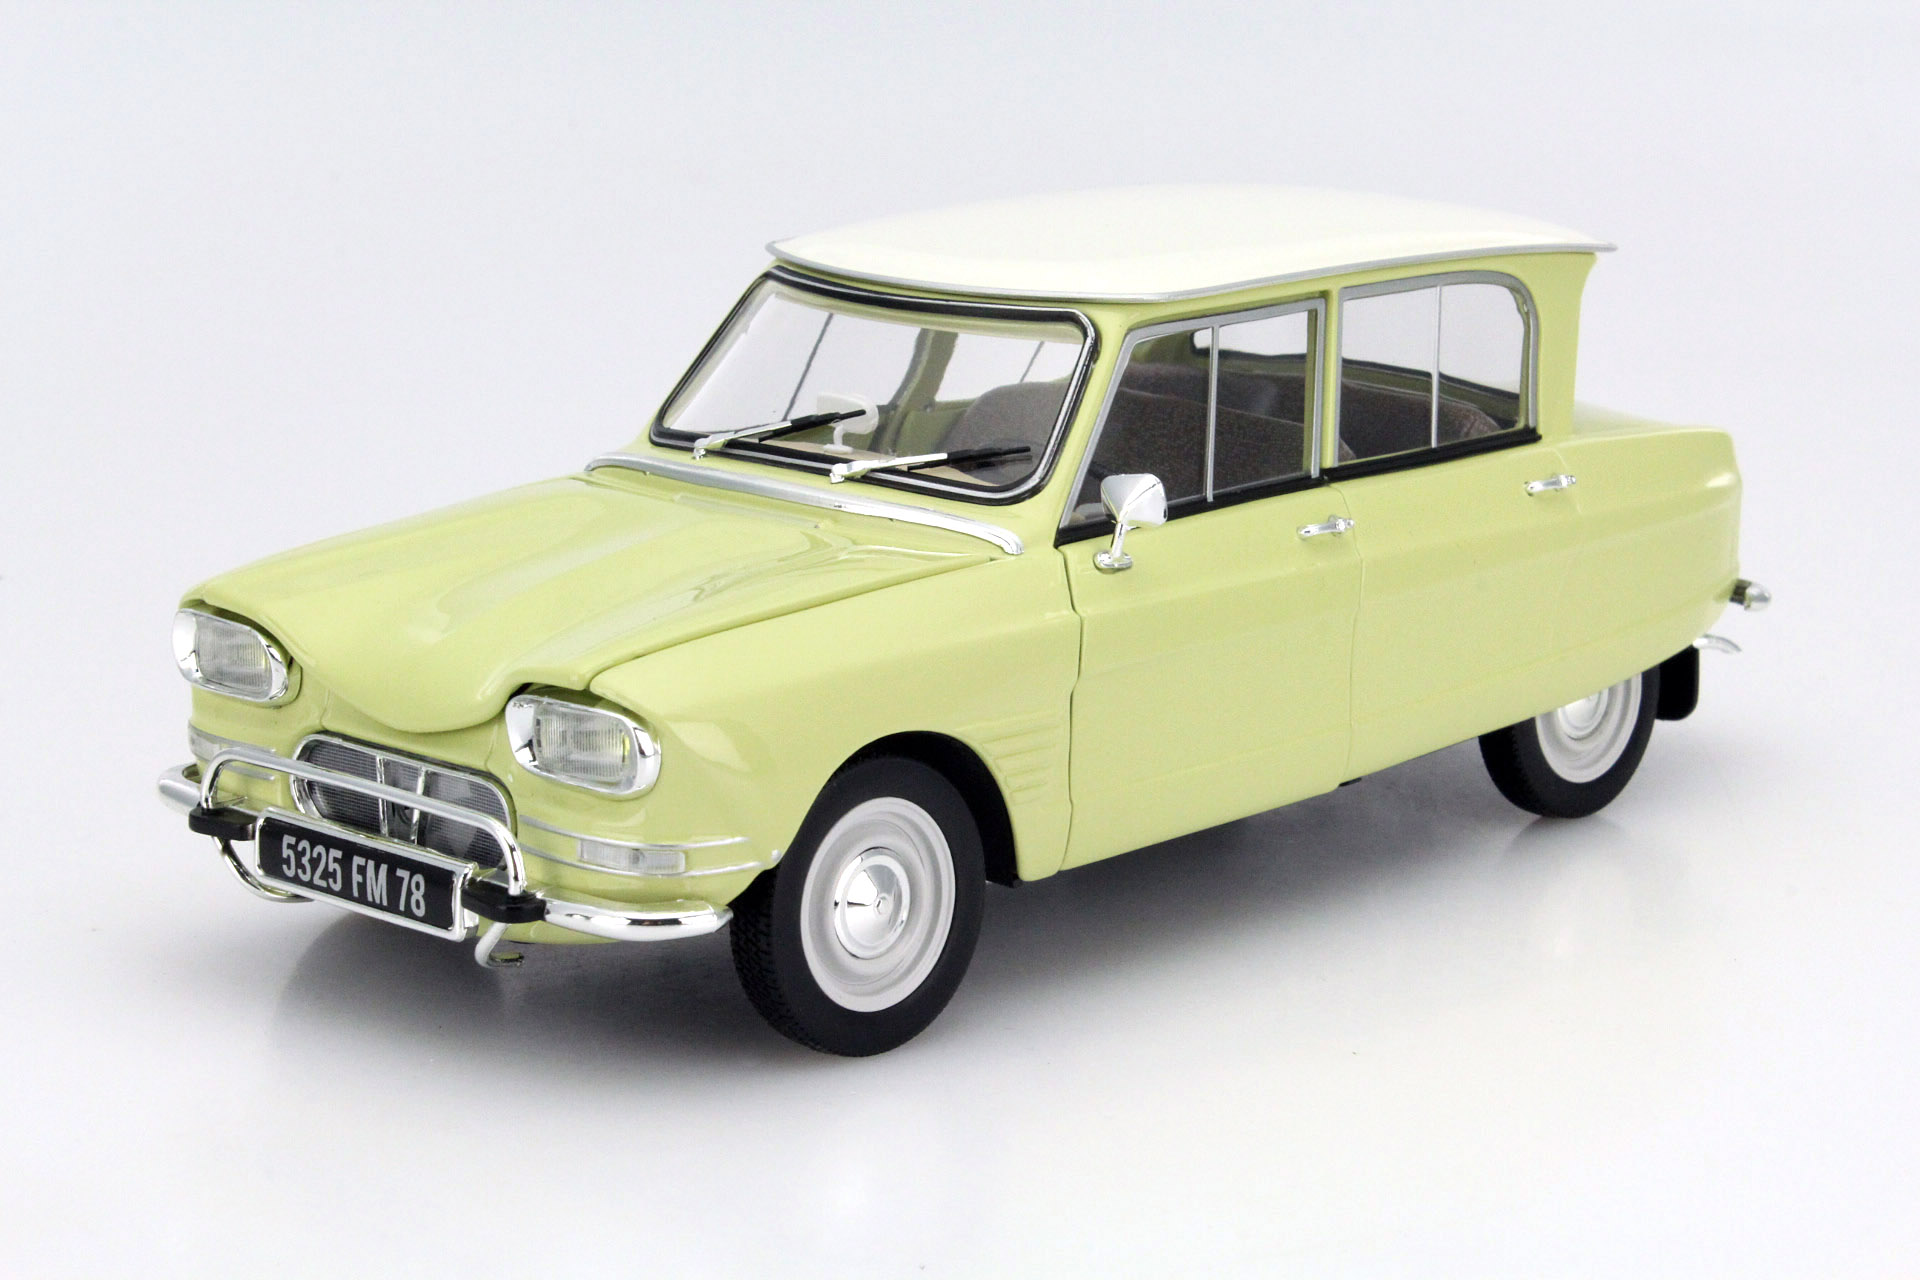 citroen ami 6 1964 naples yellow die cast model norev 181535. Black Bedroom Furniture Sets. Home Design Ideas